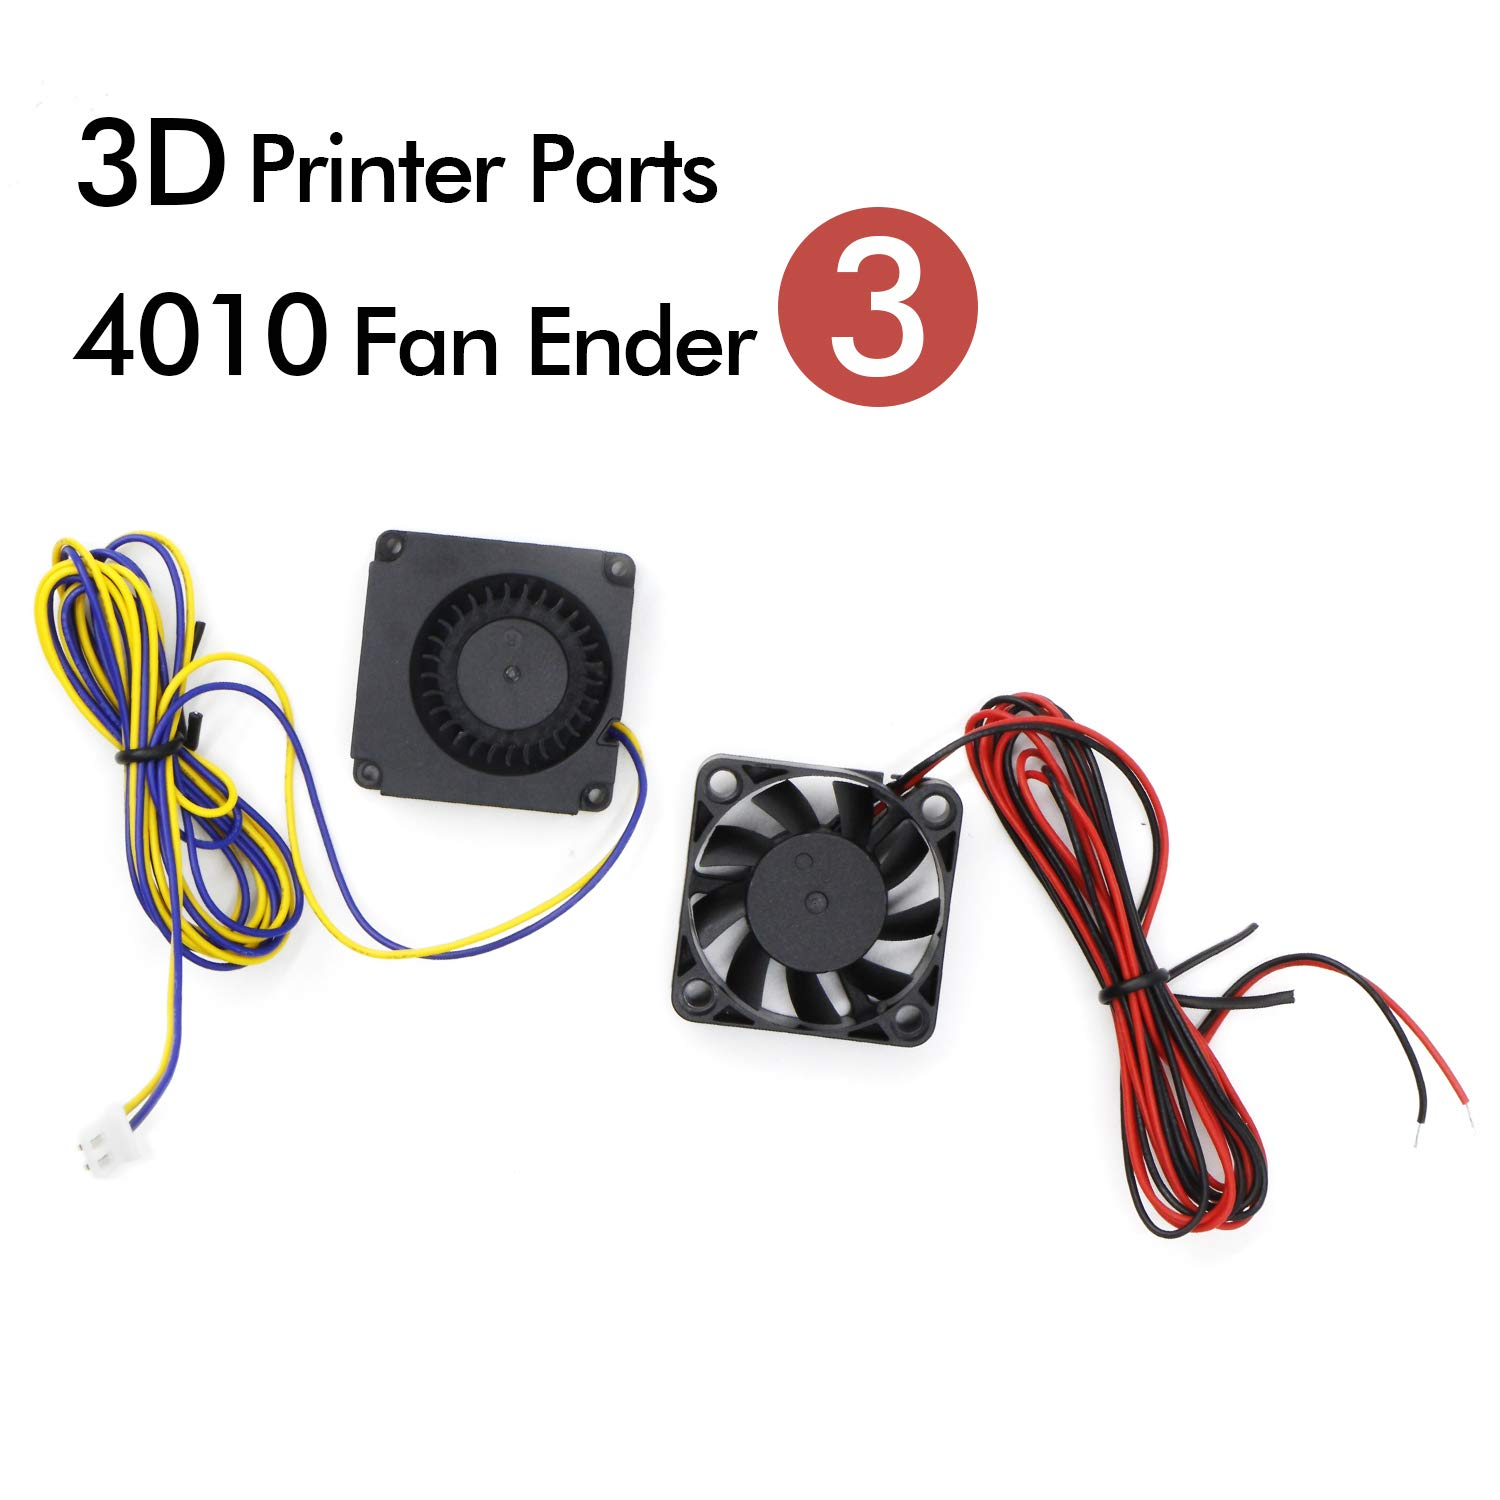 RioRand 4010 Blower 24V DC Brushless Cooling Fan 40x40x10MM and 4010 Axial Fan for 3D Printer Parts Ender 3/Ender 3 Pro